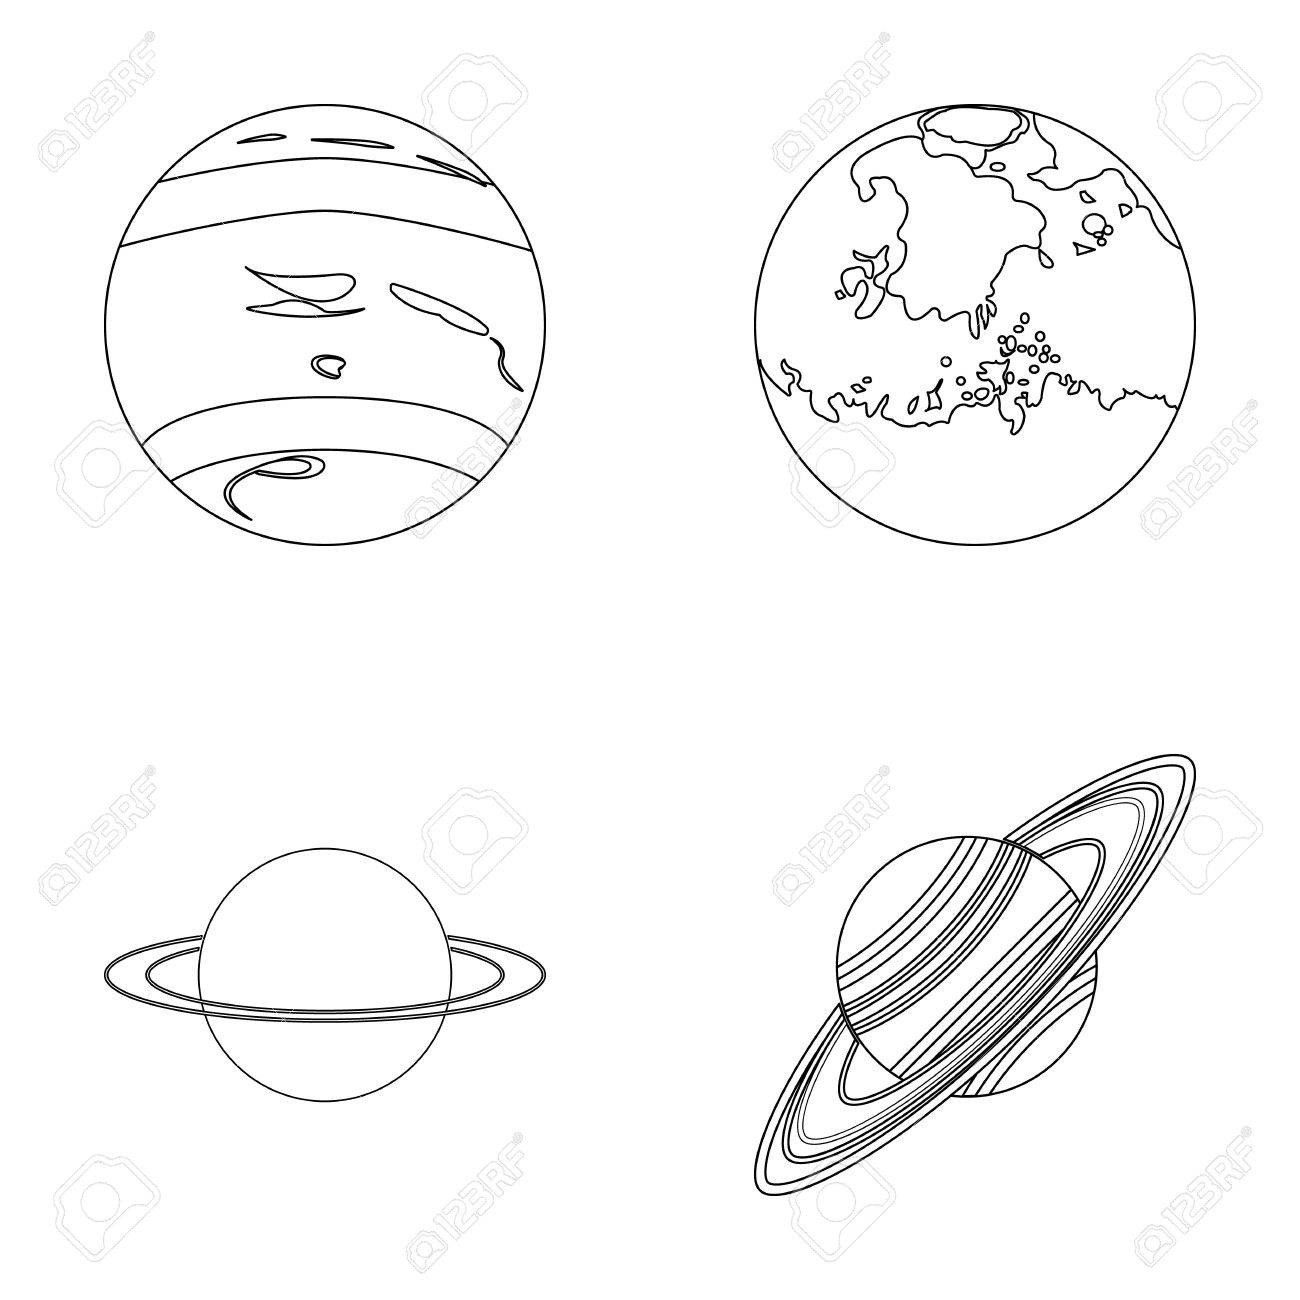 Saturn Planet Drawing at GetDrawings.com | Free for personal use ...